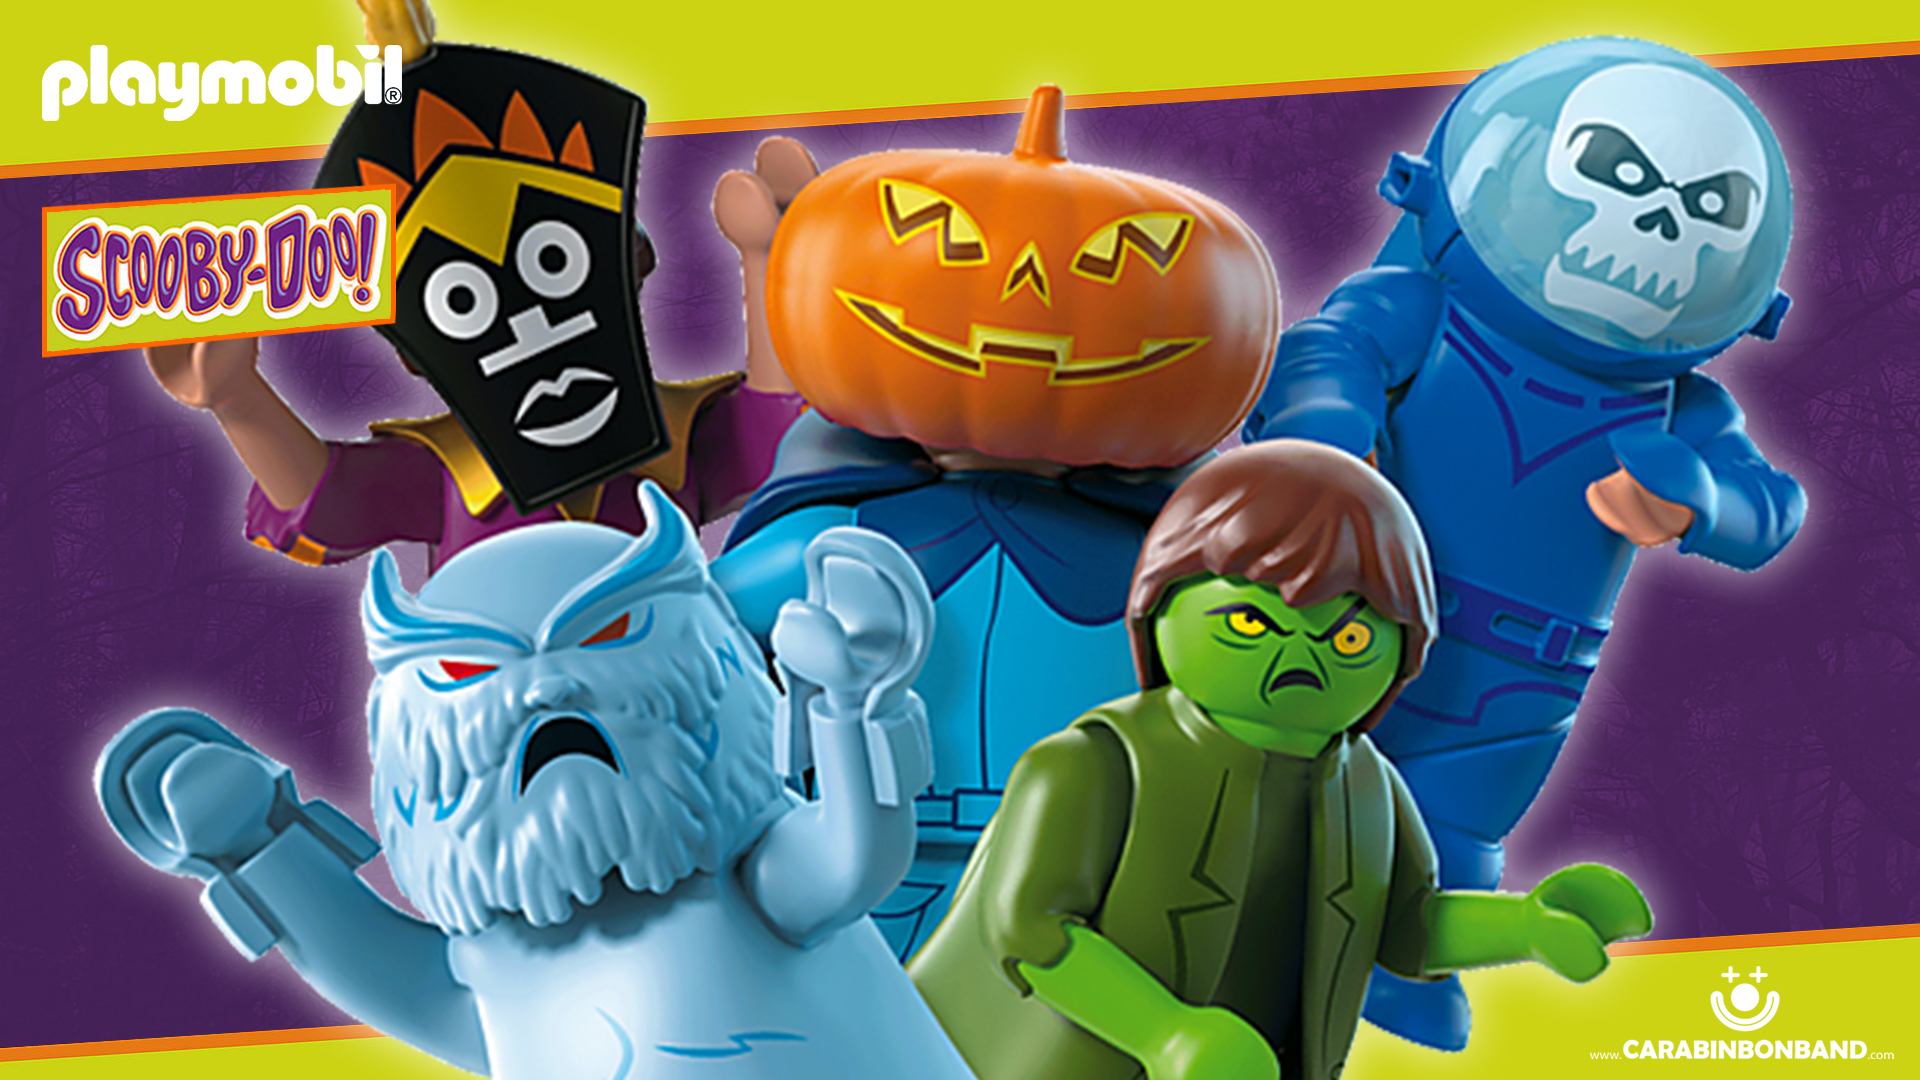 PLAYMOBIL SCOOBY DOO - Ghost collection Series 1